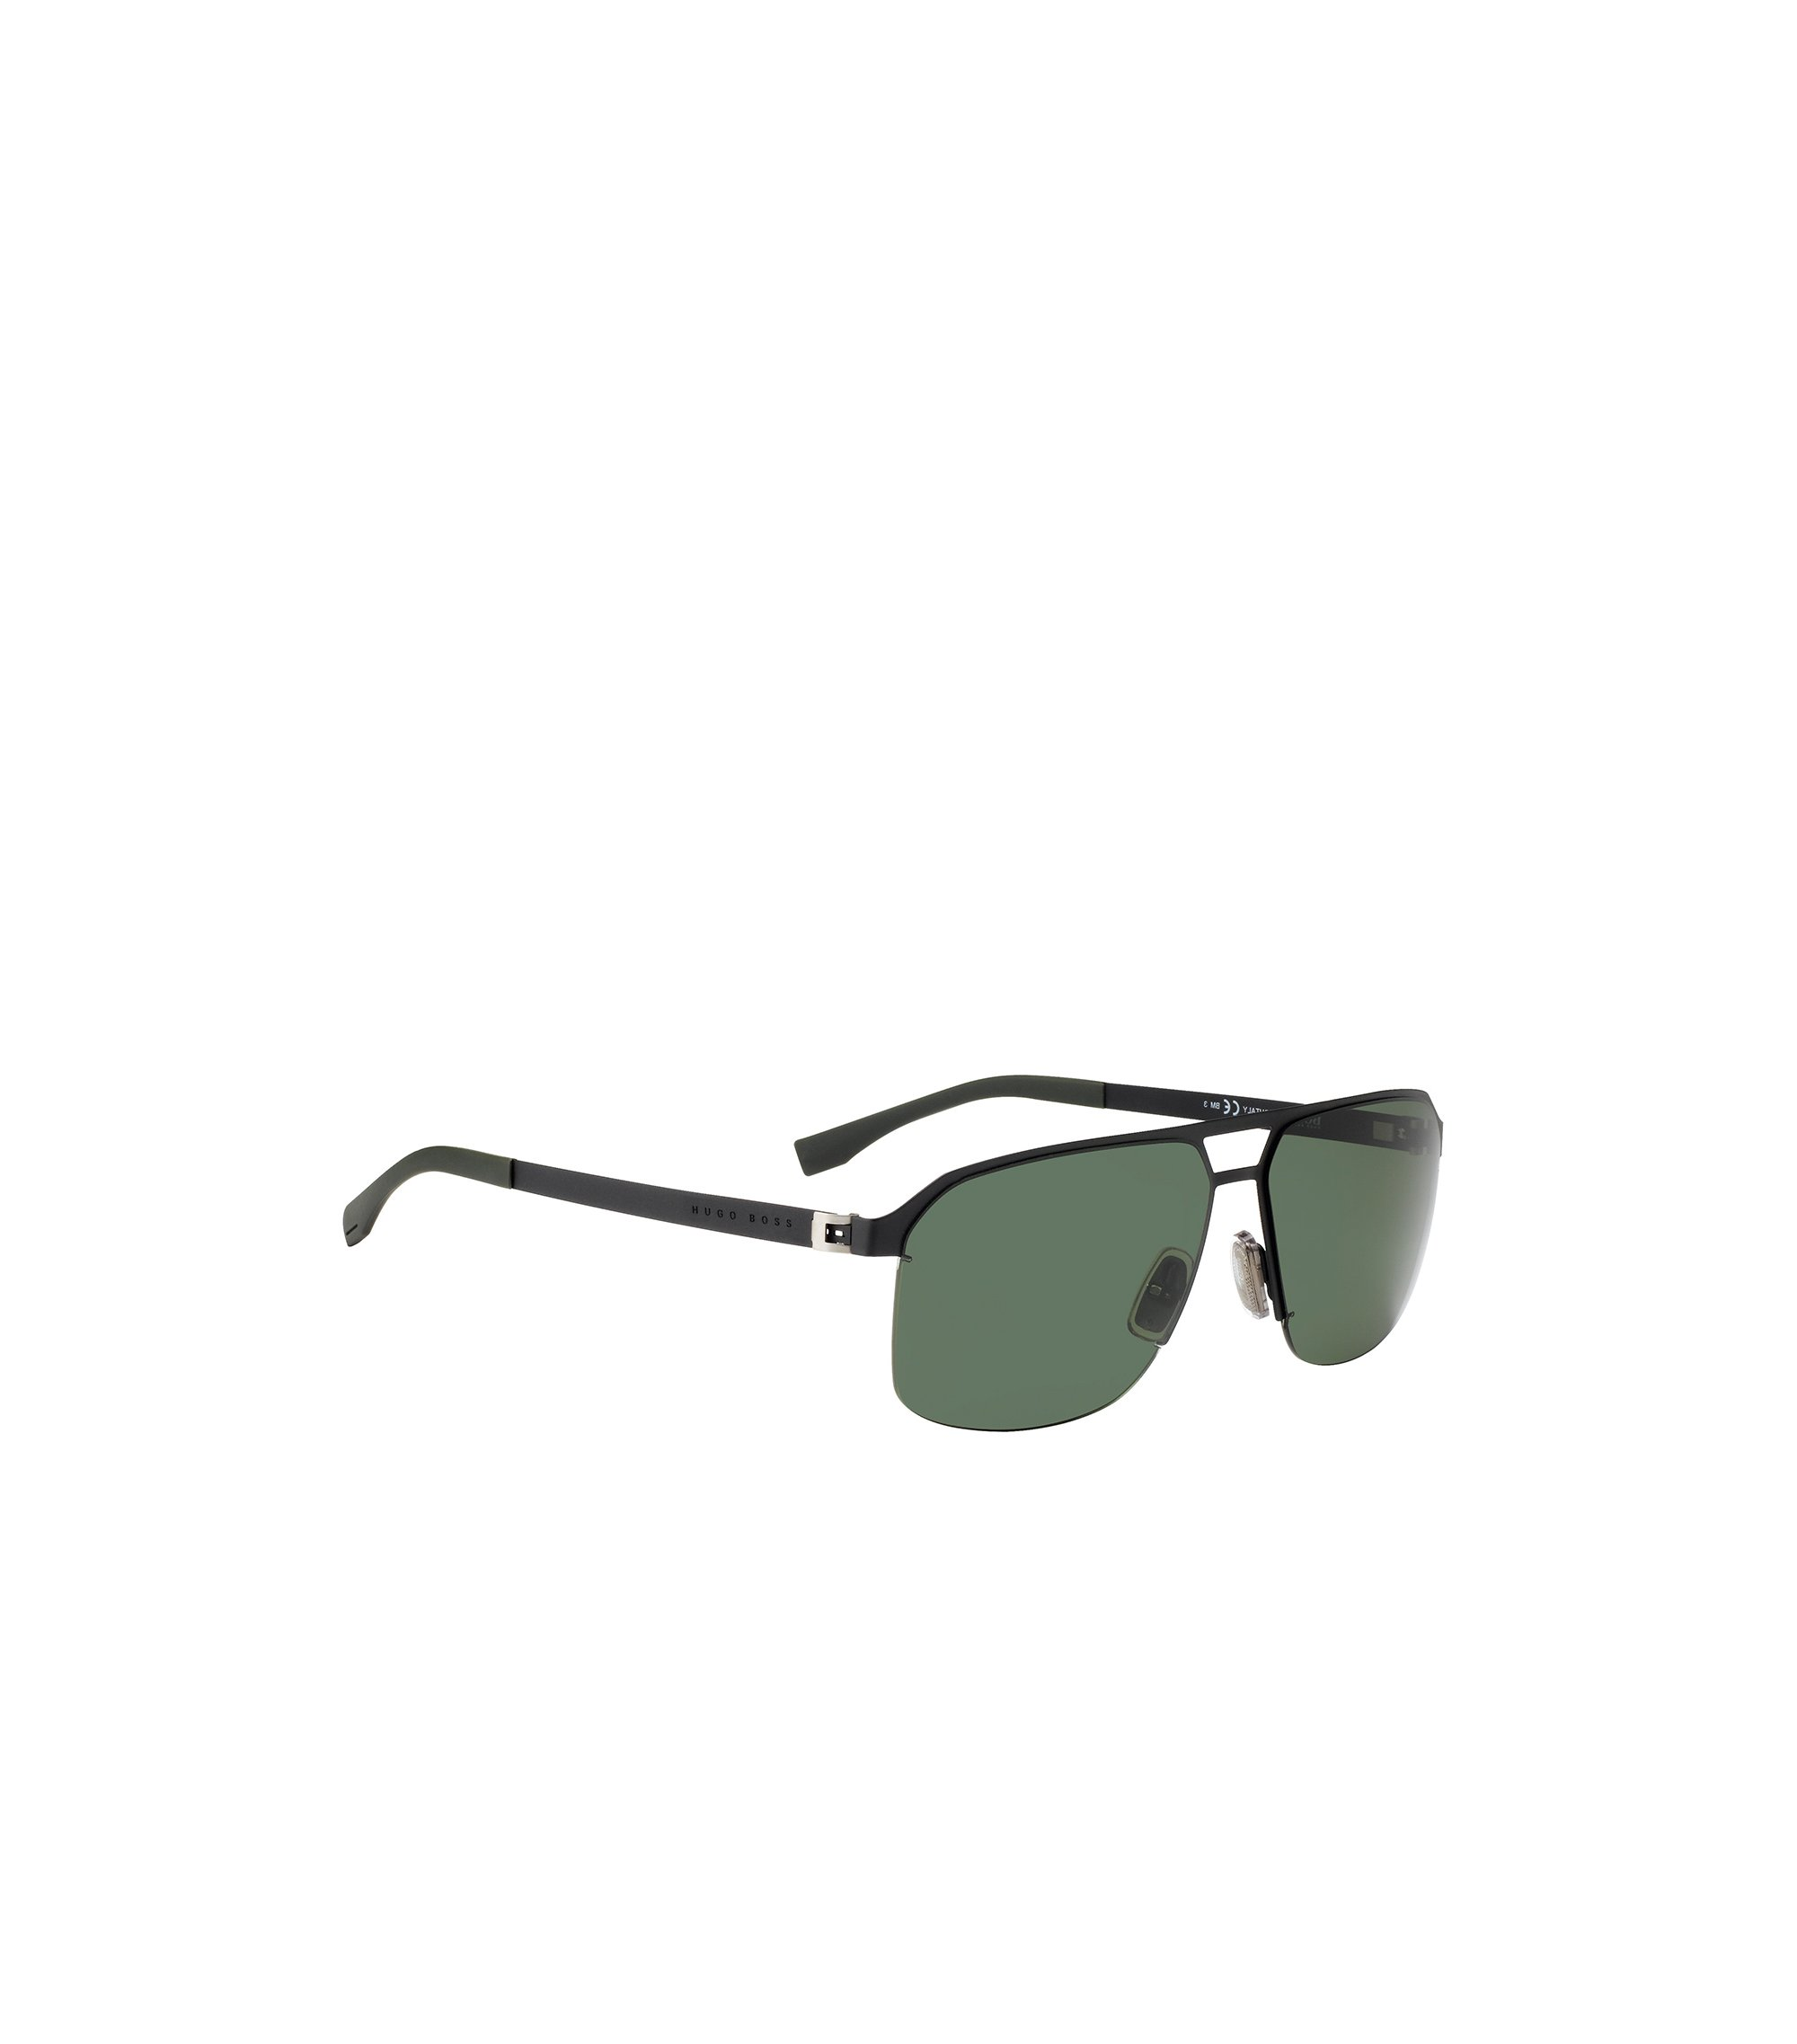 Metal navigator sunglasses with grey/green lenses: 'BOSS 0839/S', Assorted-Pre-Pack